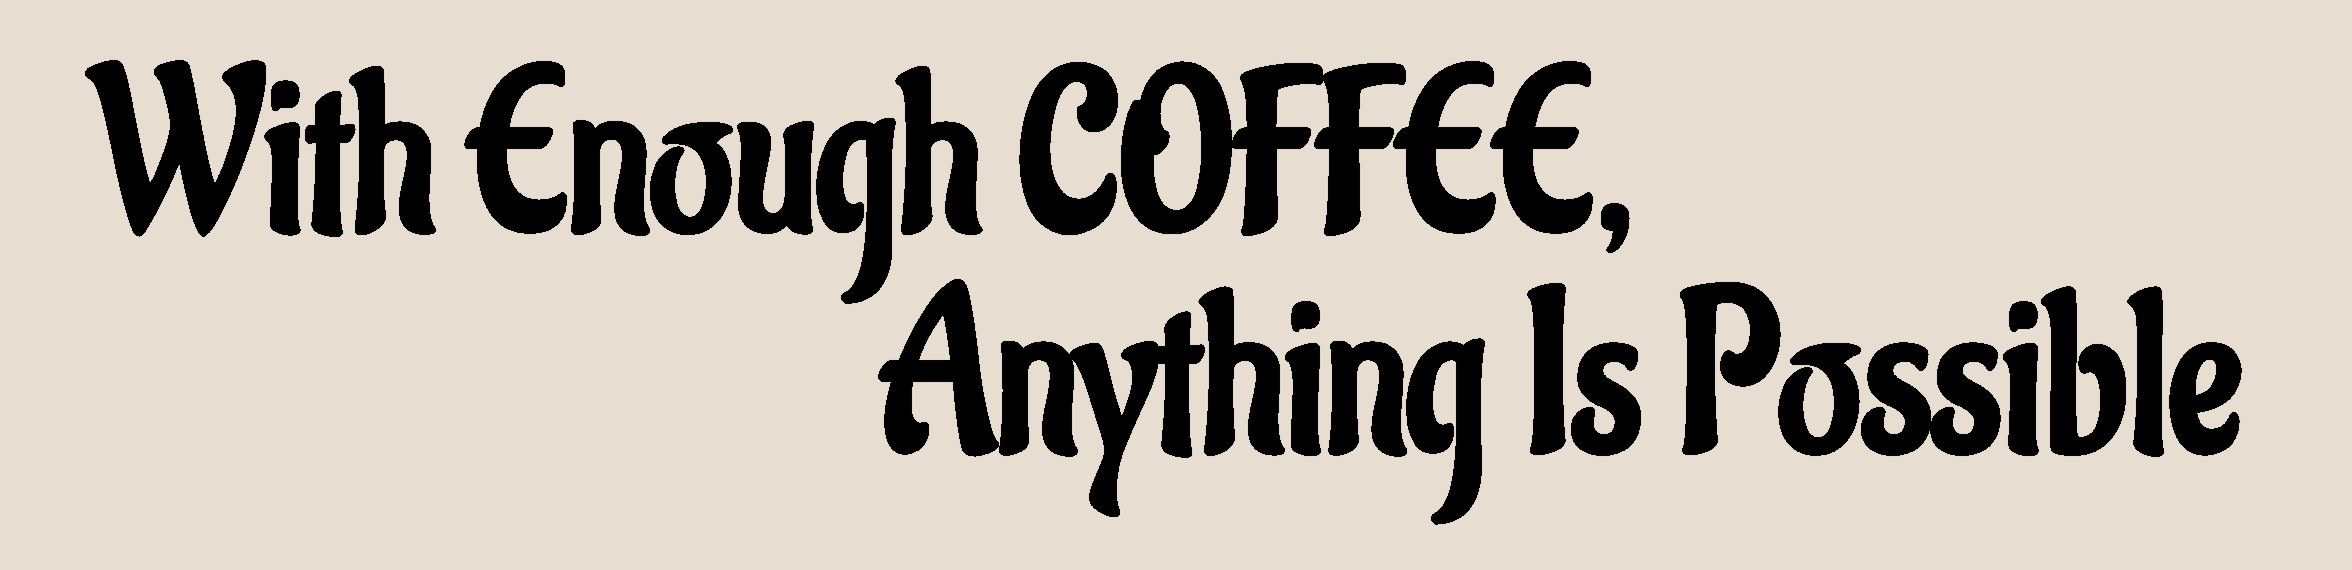 WITH ENOUGH COFFEE ANYTHING IS POSSIBLE 8